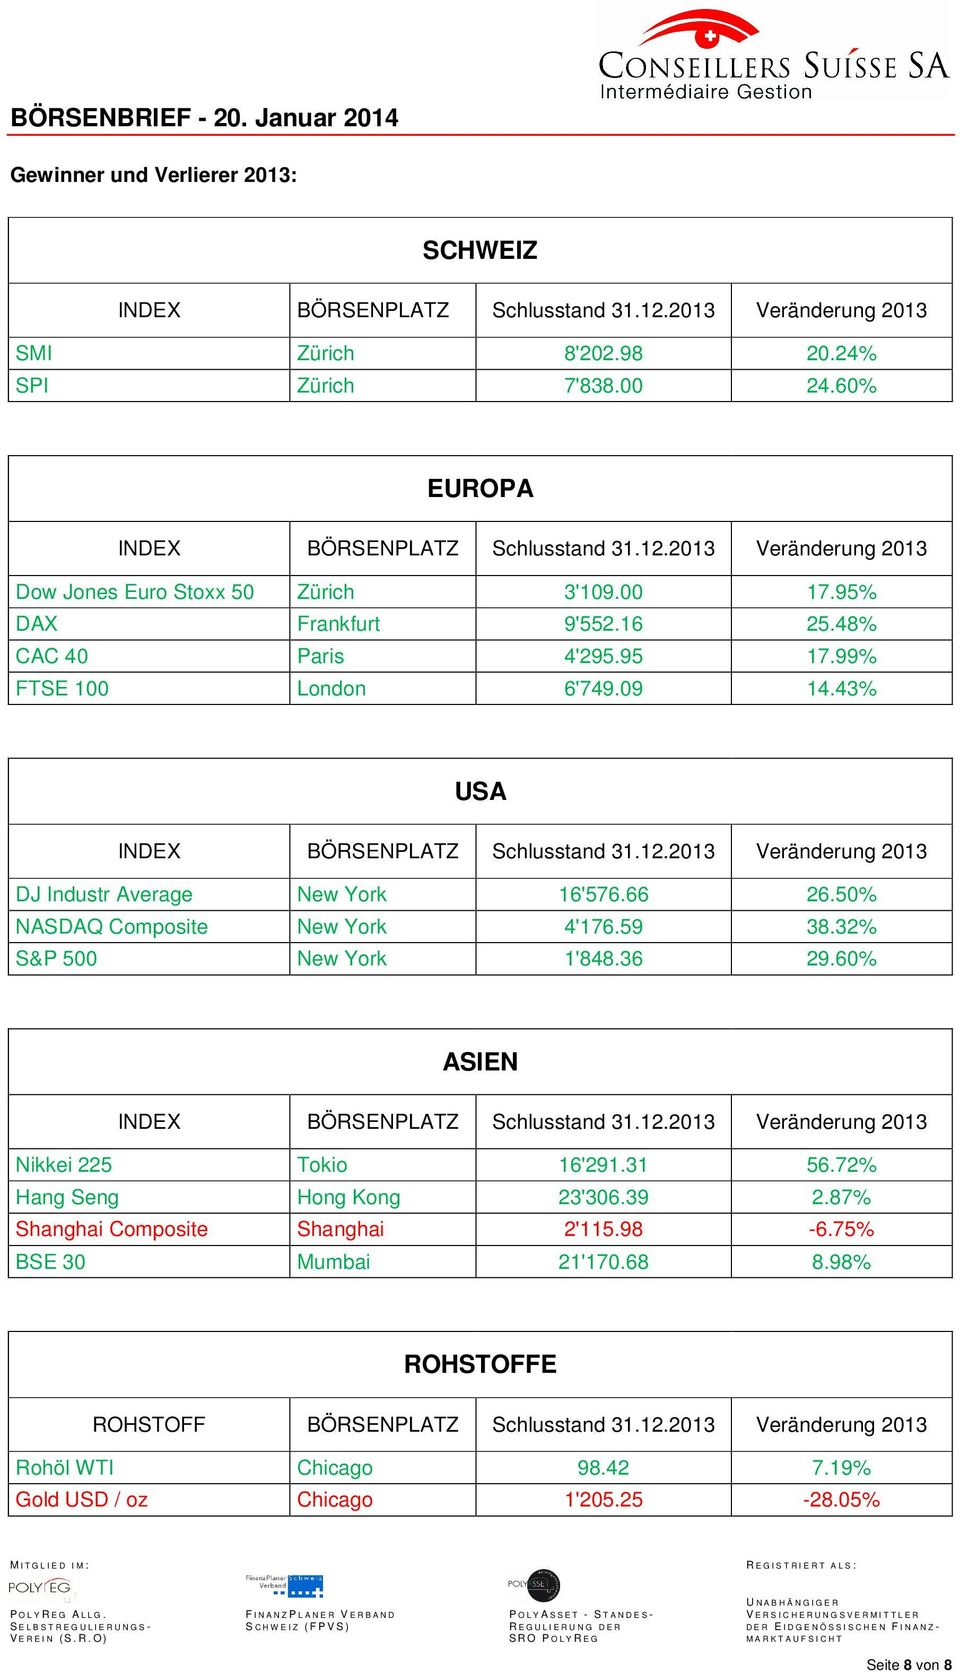 66 26.50% NASDAQ Composite New York 4'176.59 38.32% S&P 500 New York 1'848.36 29.60% ASIEN INDEX BÖRSENPLATZ Schlusstand 31.12.2013 Veränderung 2013 Nikkei 225 Tokio 16'291.31 56.